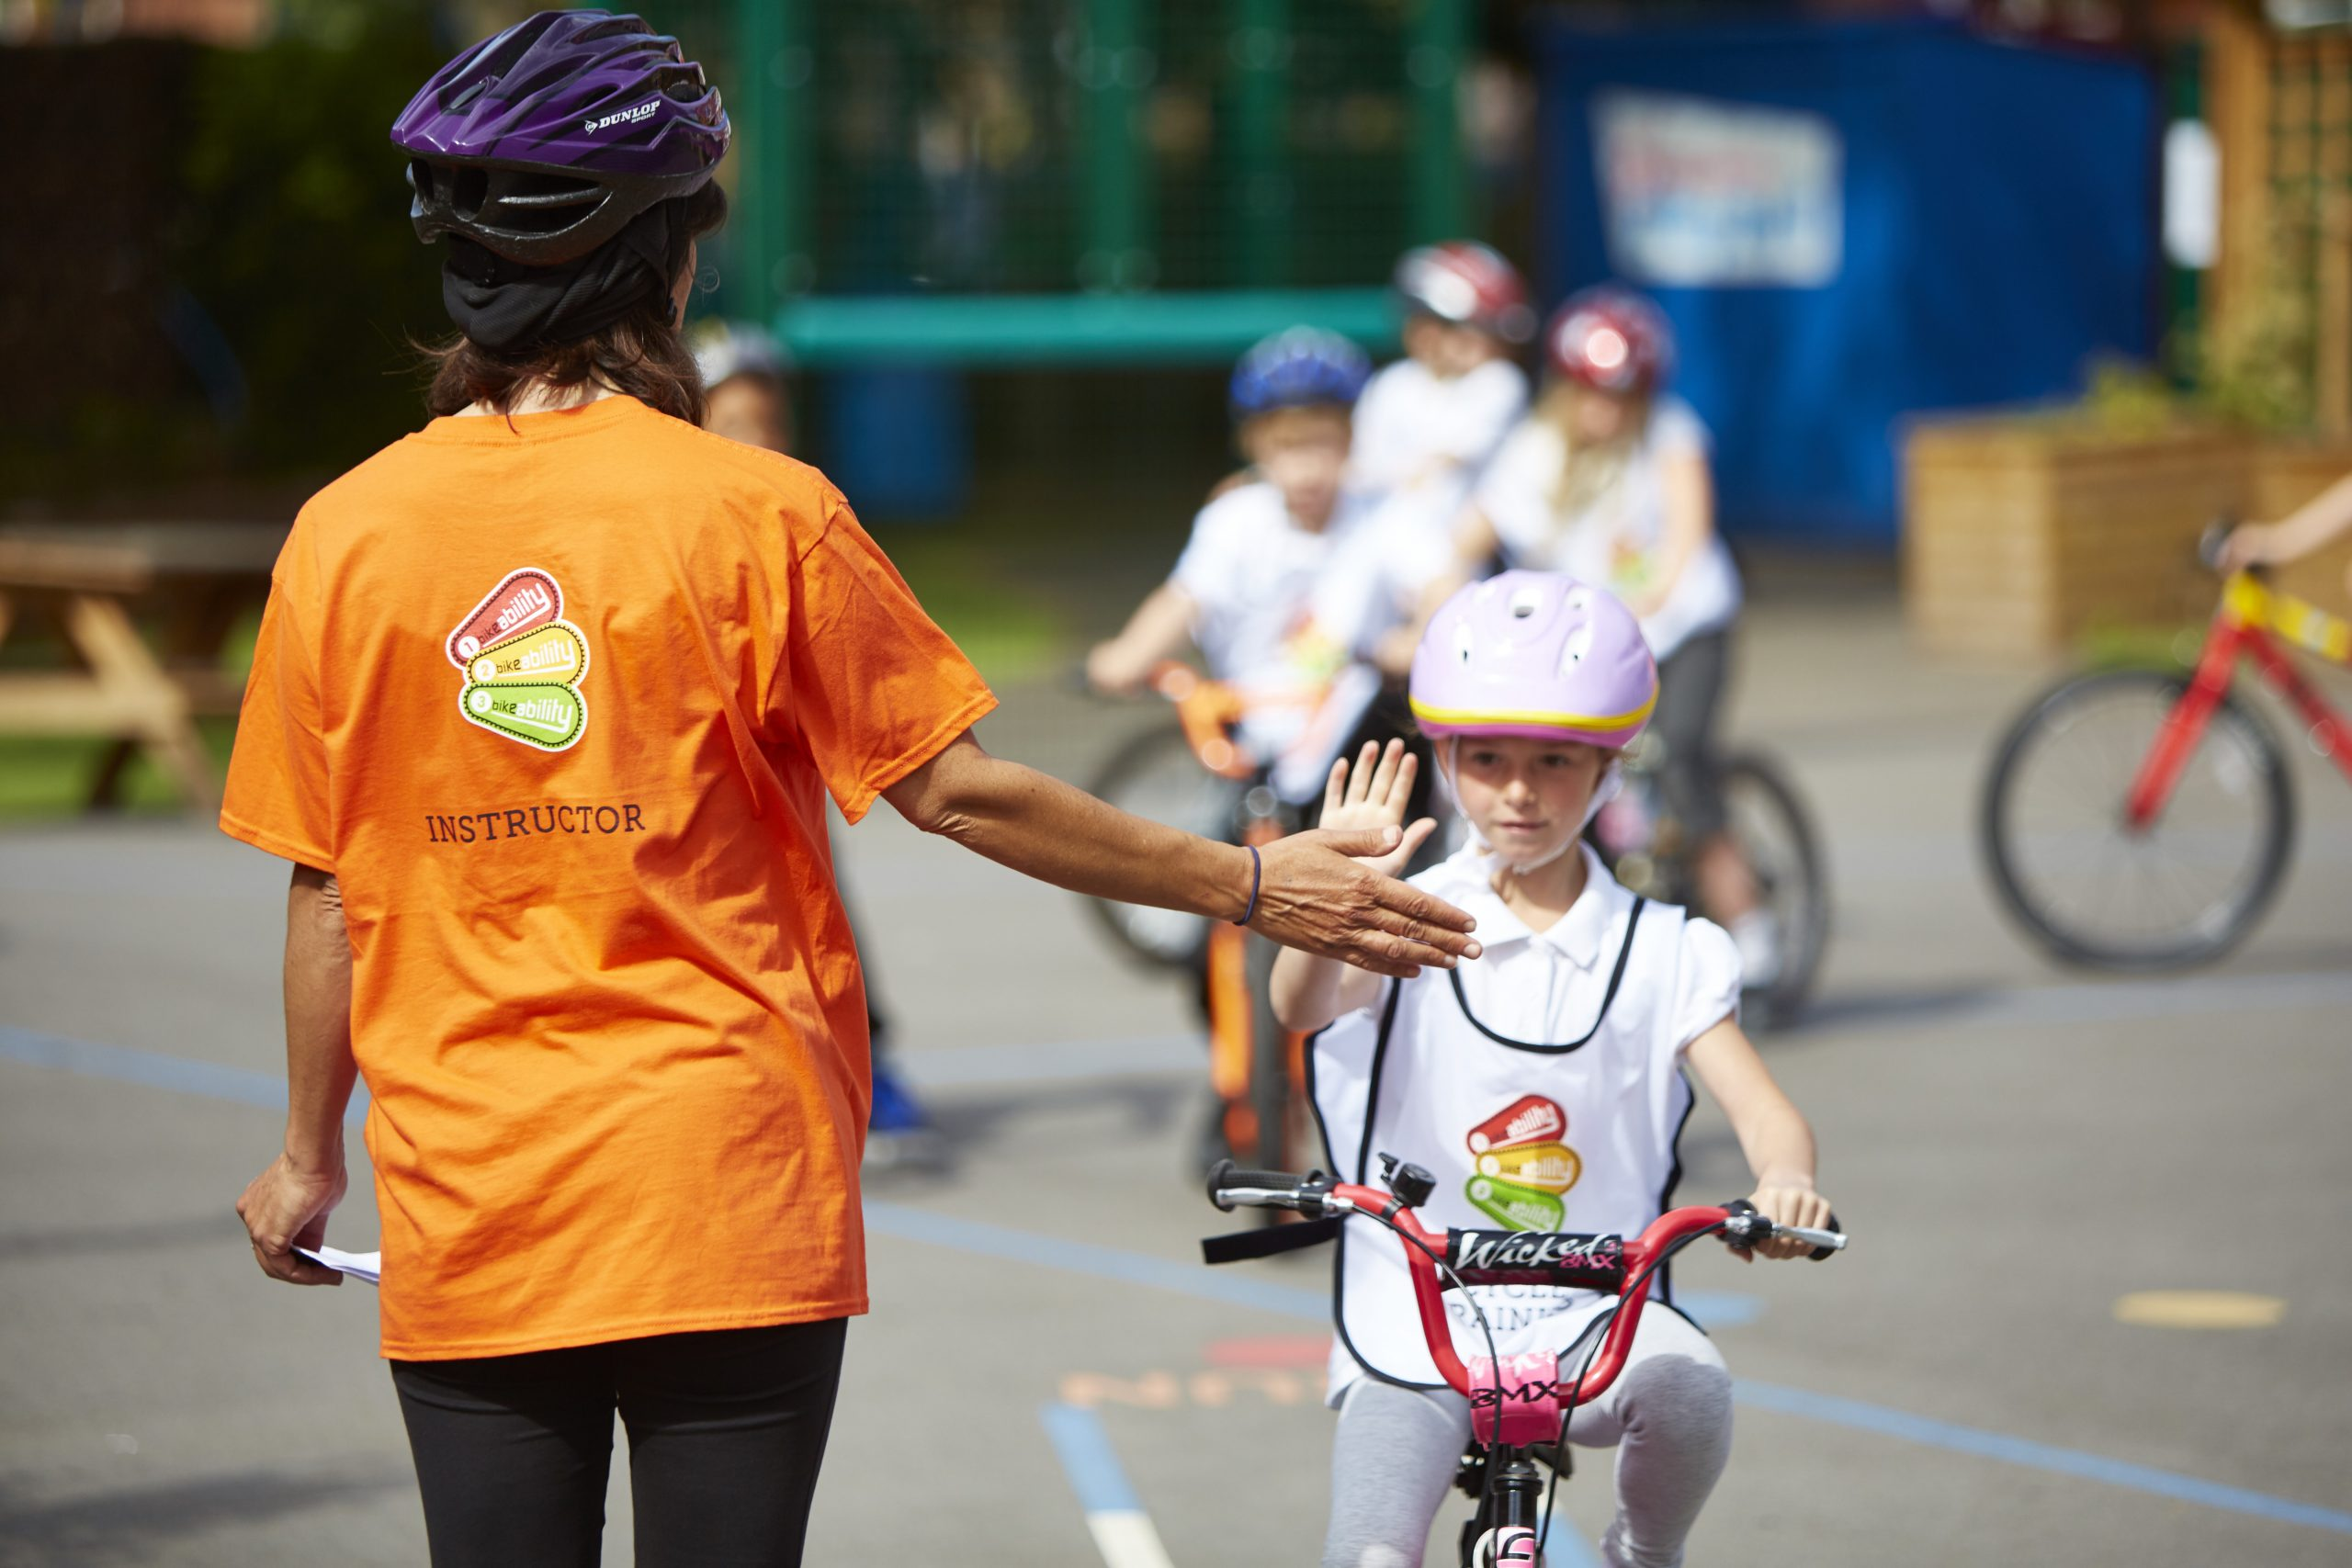 A Bikeability Professionals instructor high fiving a young girl on a bike